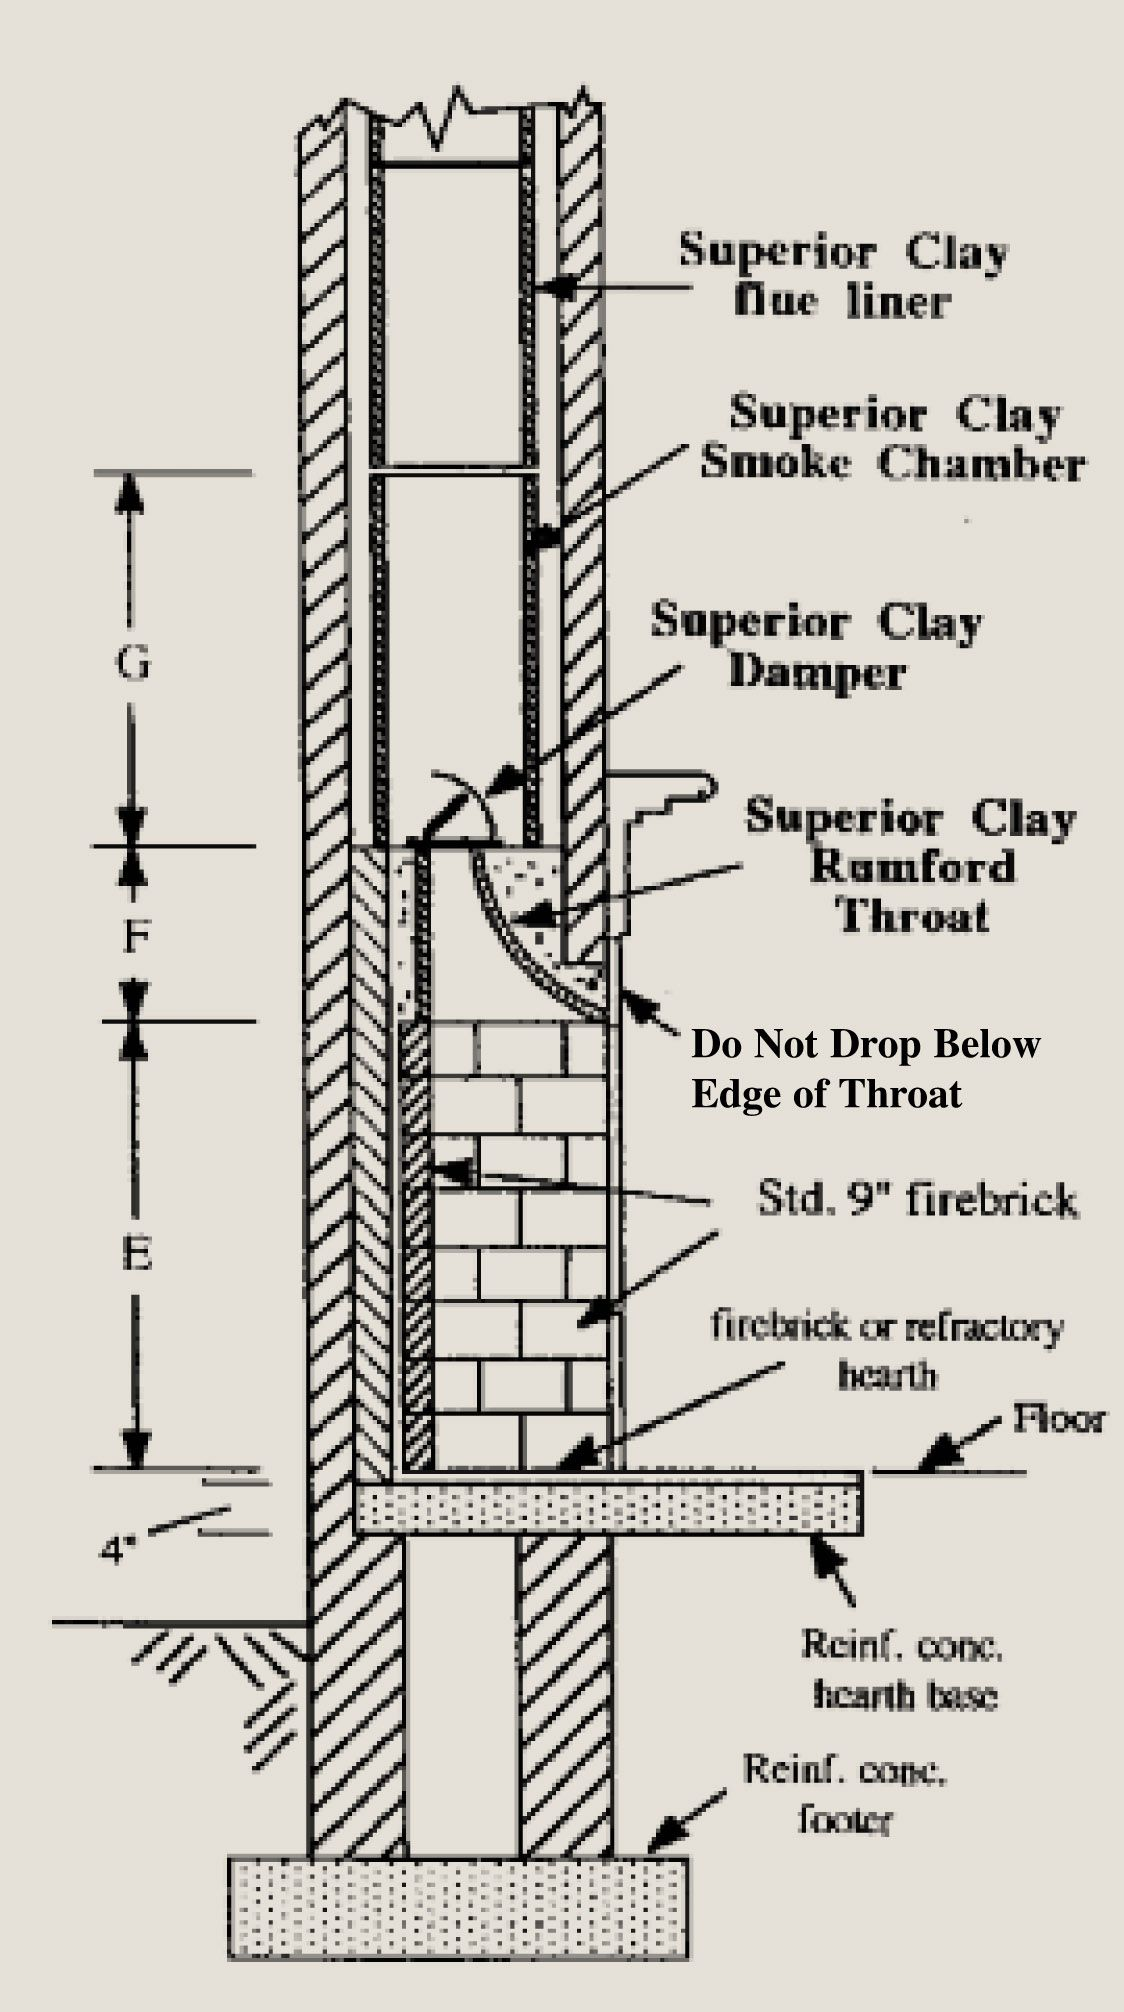 Fireplace Components Diagram - DIY Wiring Diagrams •